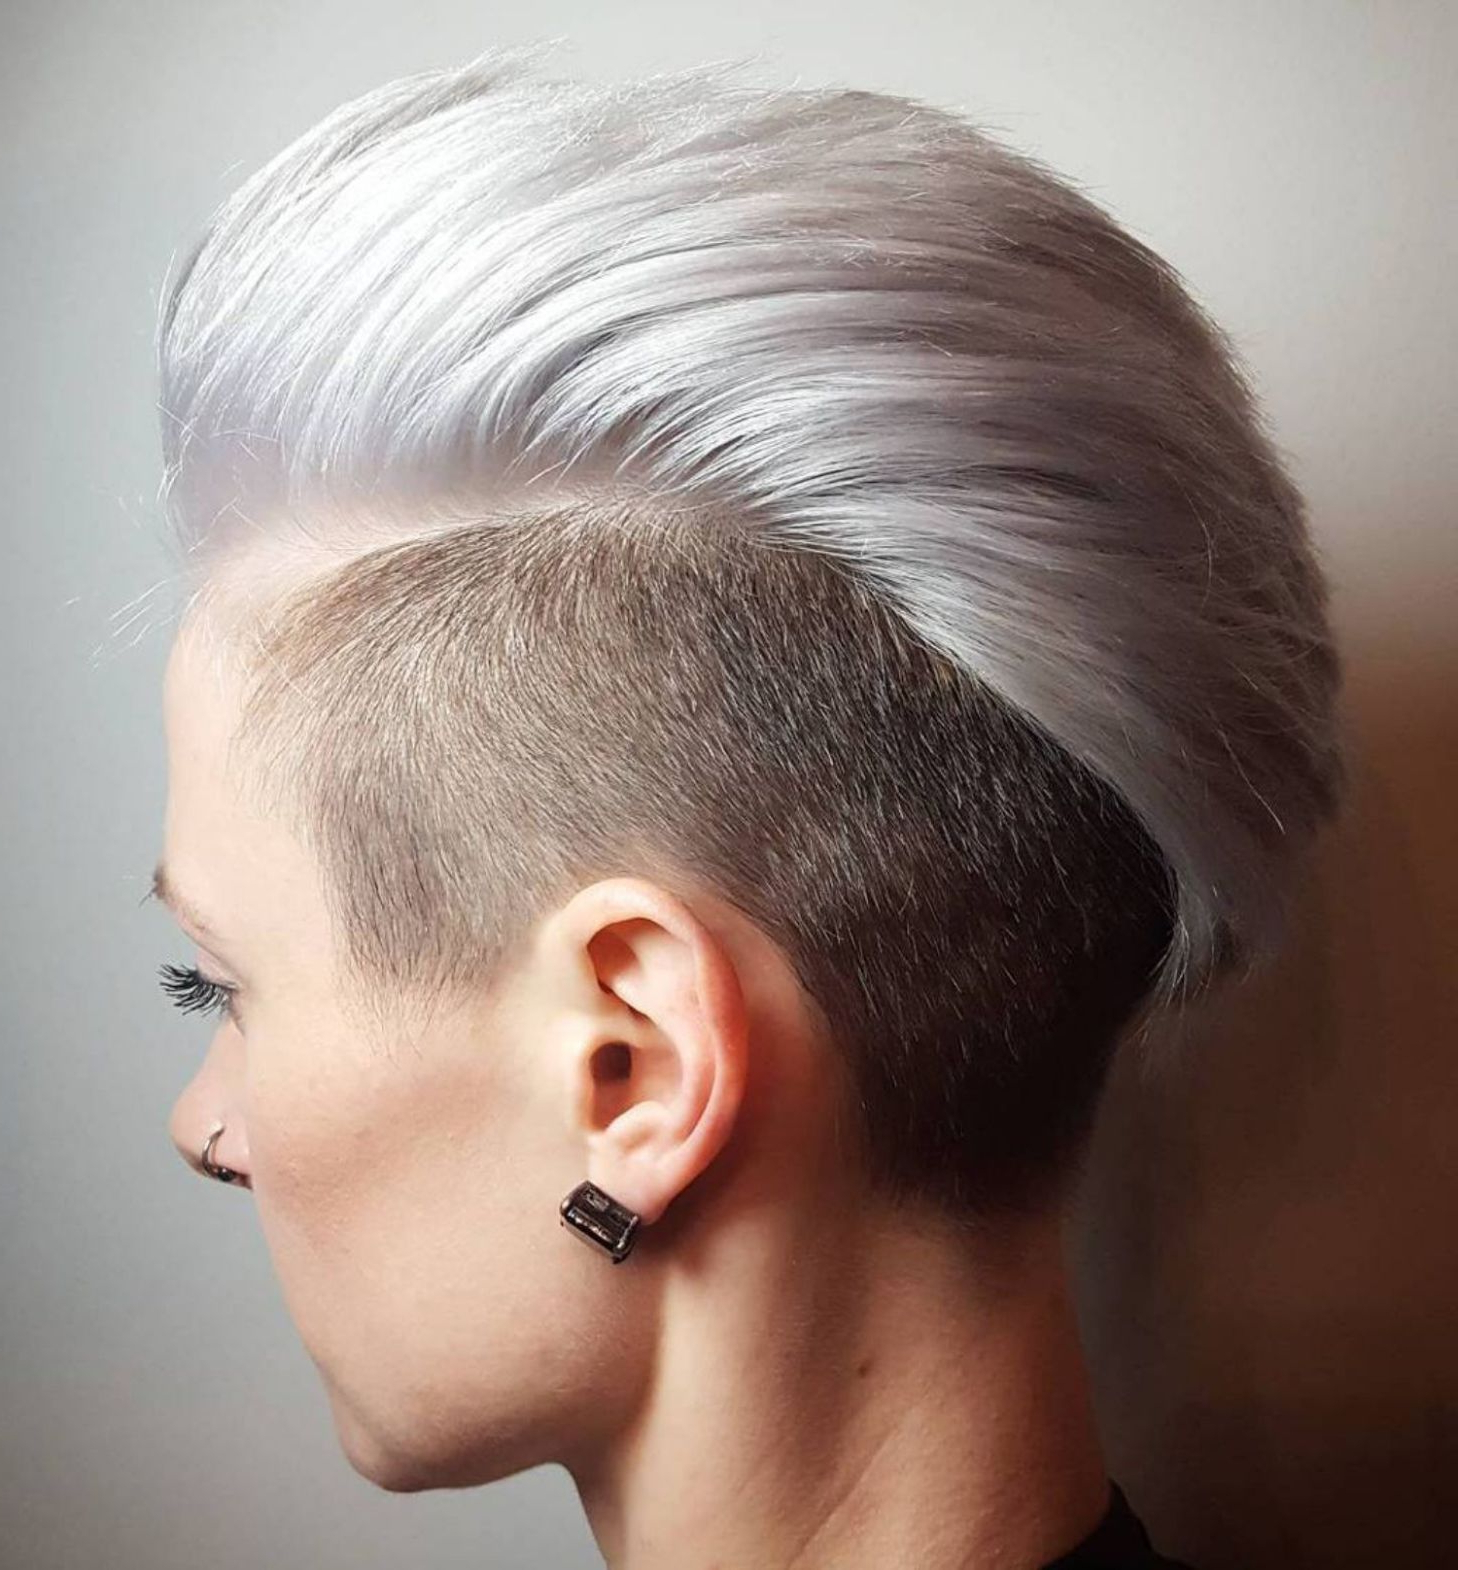 70 Most Gorgeous Mohawk Hairstyles Of Nowadays In 2019 Pertaining To Most Up To Date Classic Blonde Mohawk Hairstyles For Women (View 5 of 20)